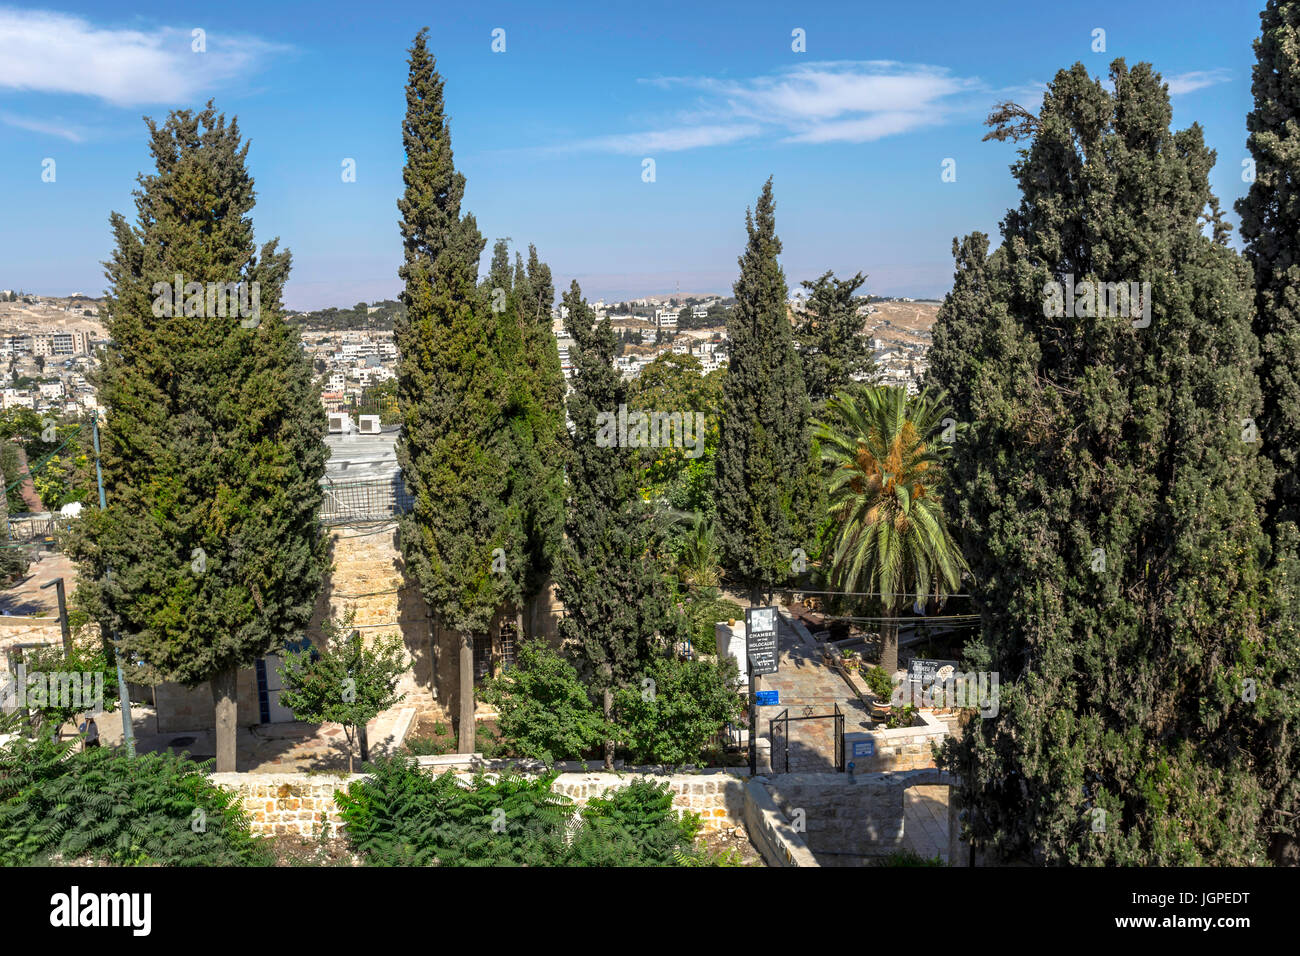 View of the entrance to the Chamber of the Holocaust, Museum and Memorial, Jerusalem, Israel. - Stock Image